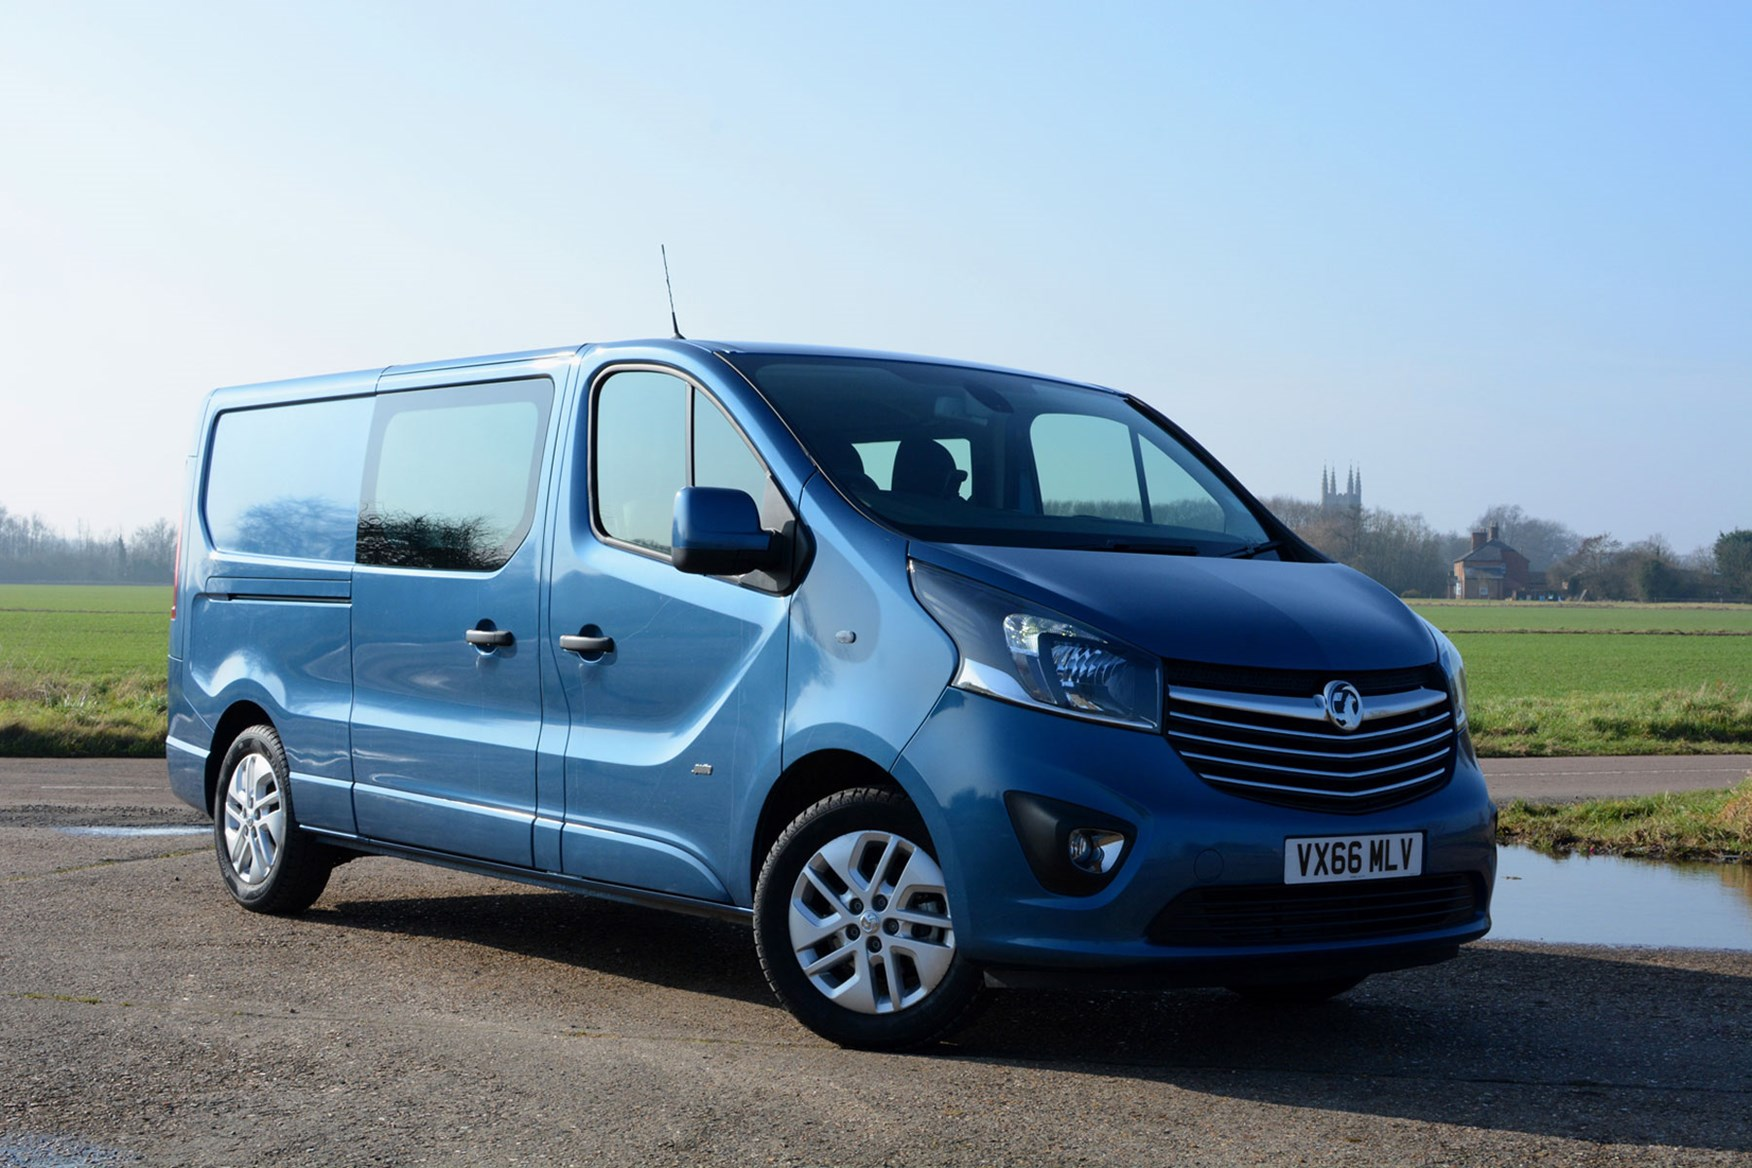 Vauxhall Vivaro Doublecab Sportive review - front view, blue